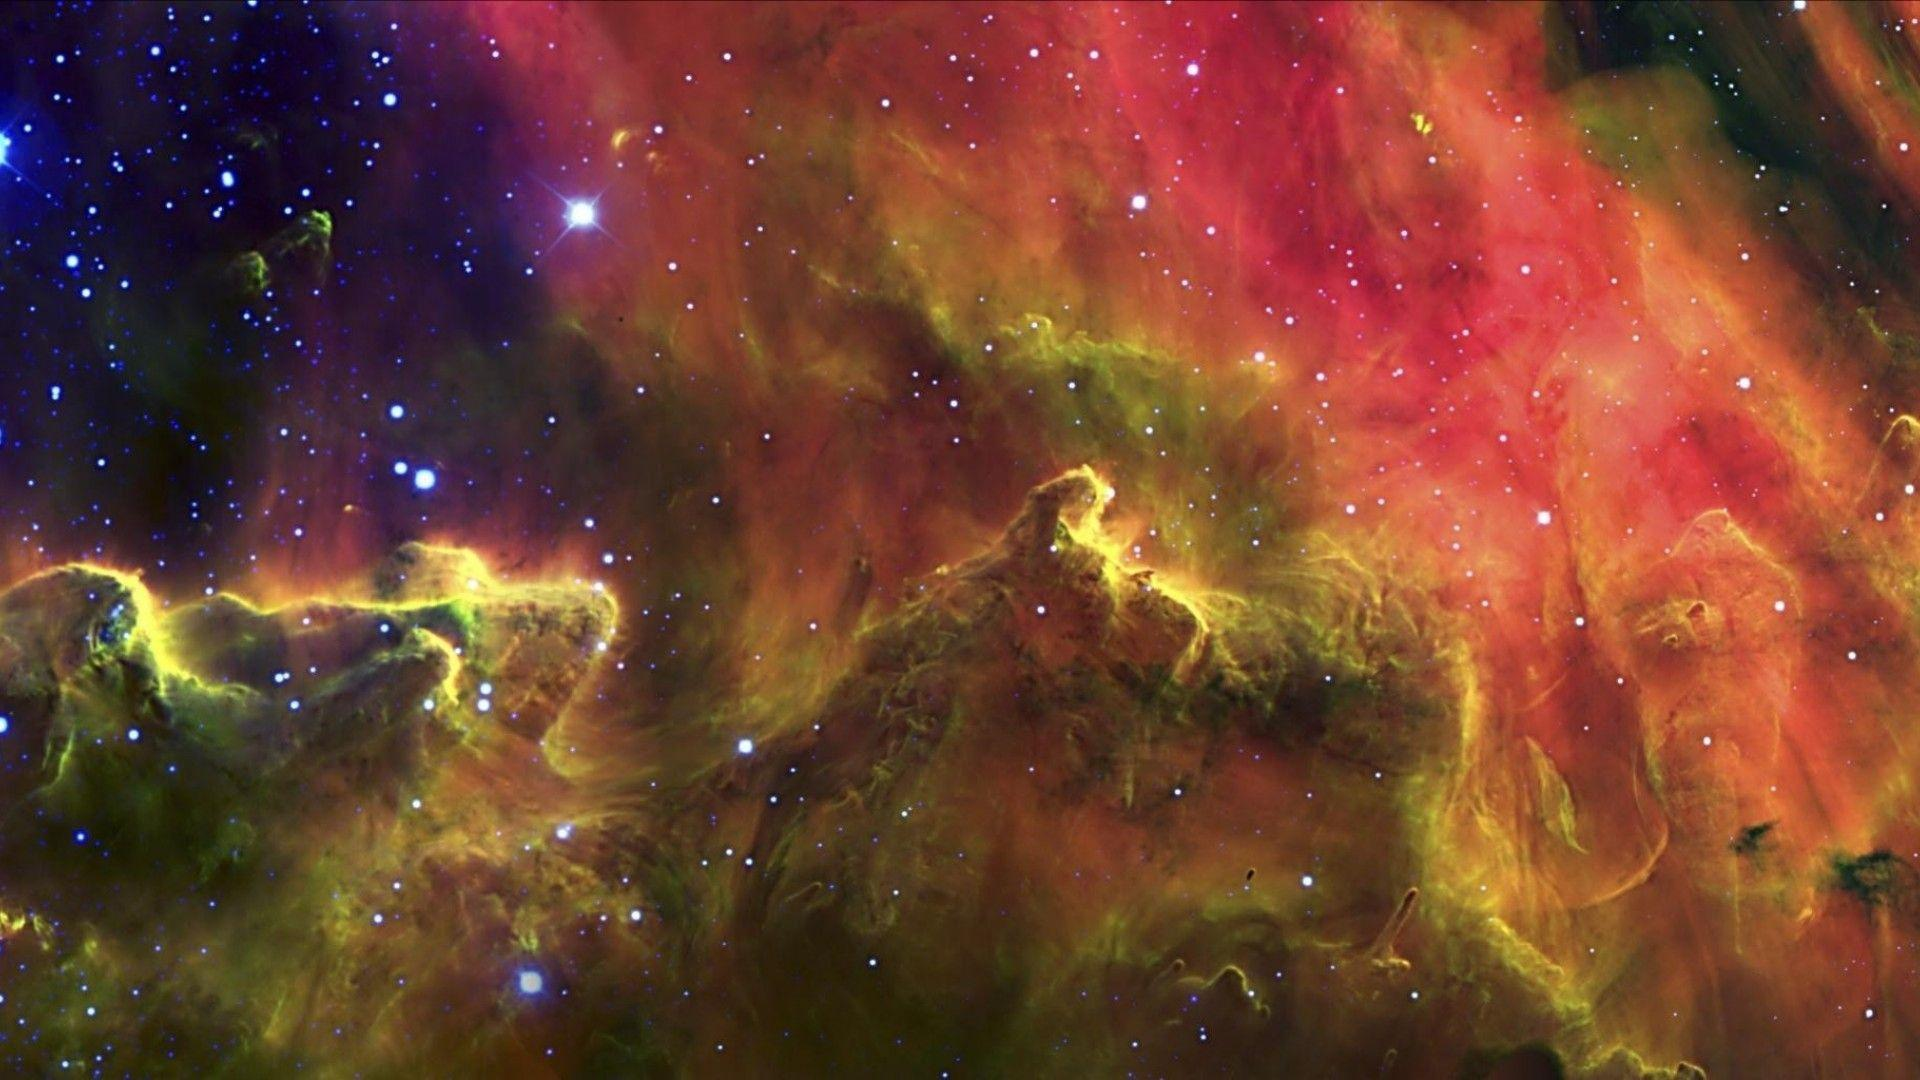 hubble universe hd - photo #6